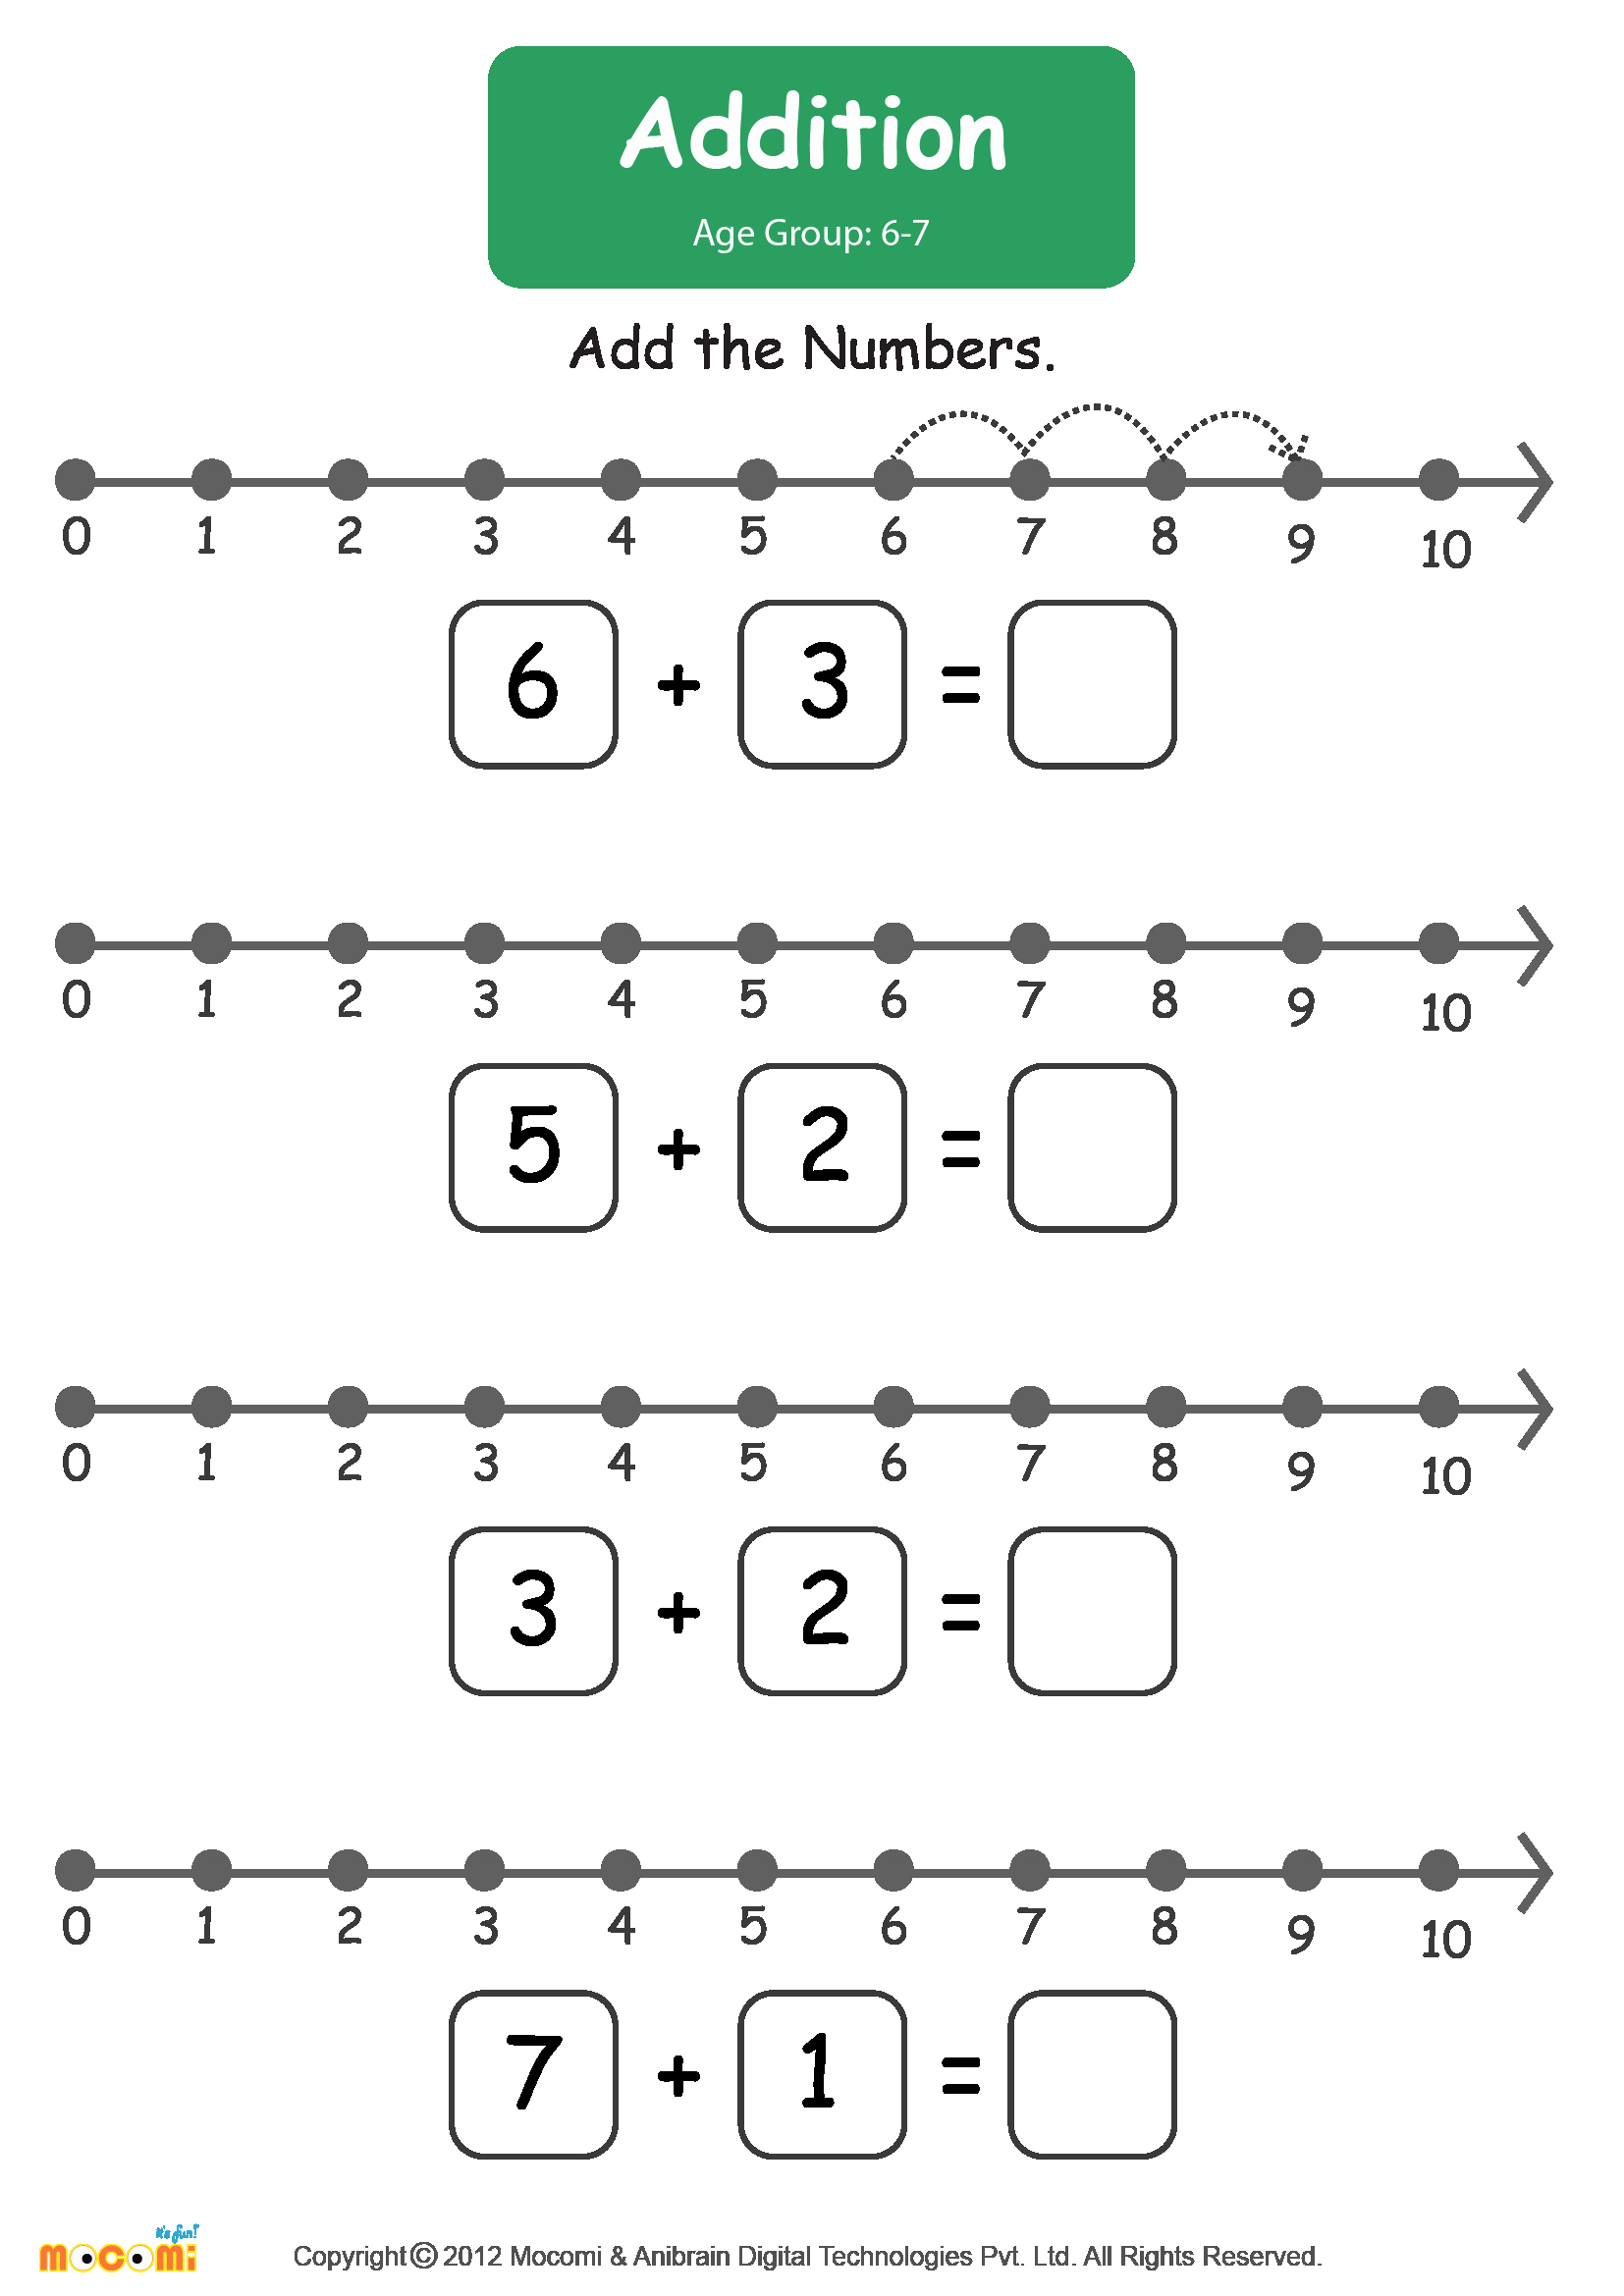 Addition Worksheets with Pictures Lovely Addition Worksheet Math for Kids